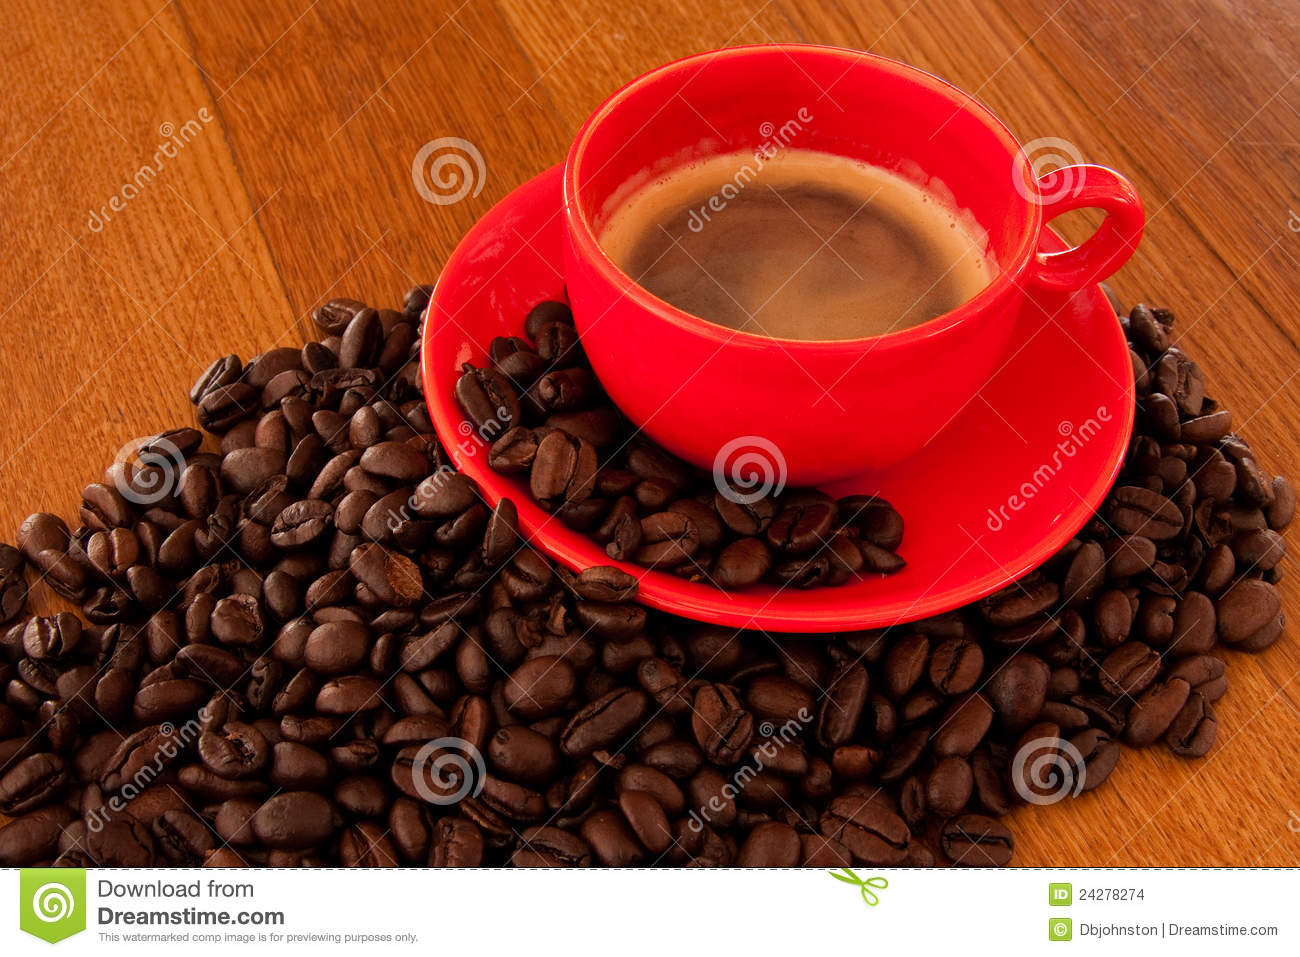 Expresso coffee in red cup